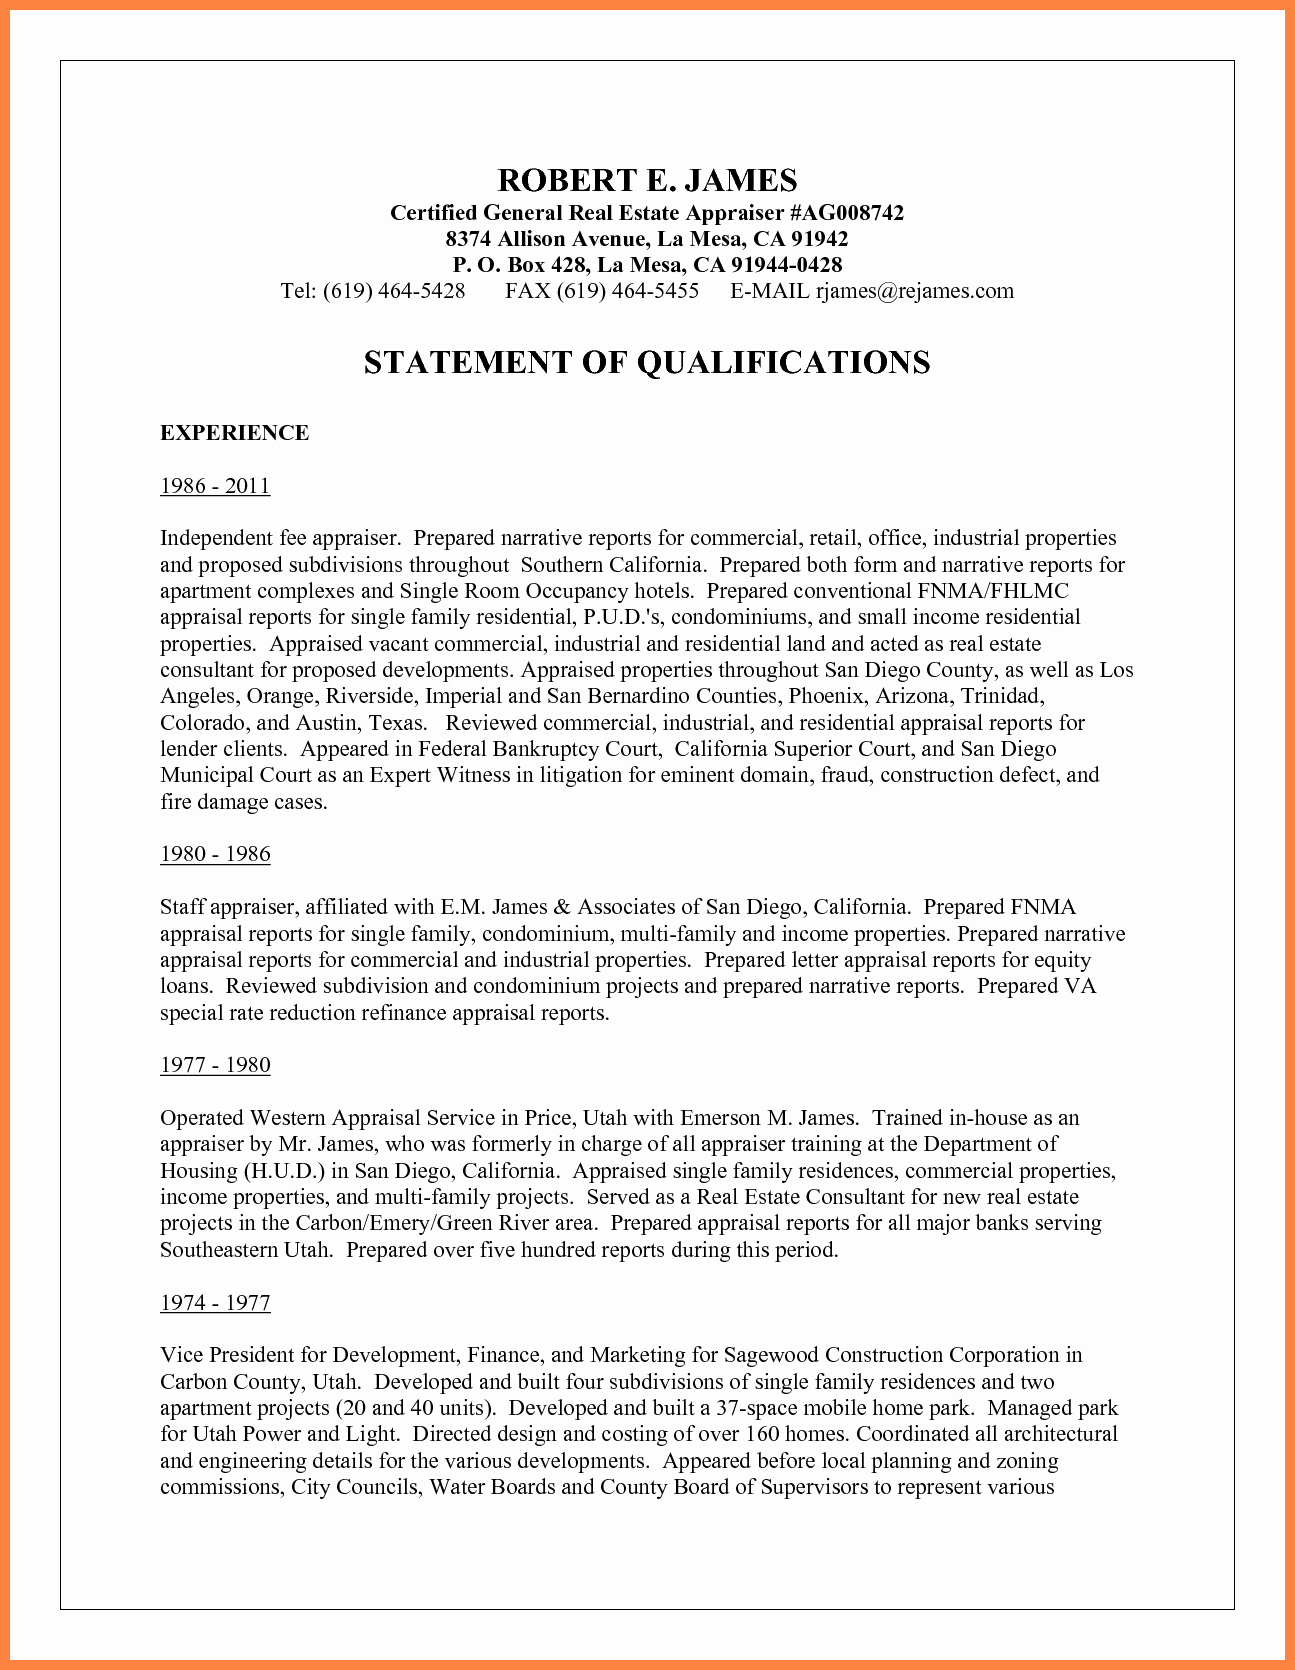 Statement Of Qualifications Template Free Best Of 10 Sample Statement Of Qualifications